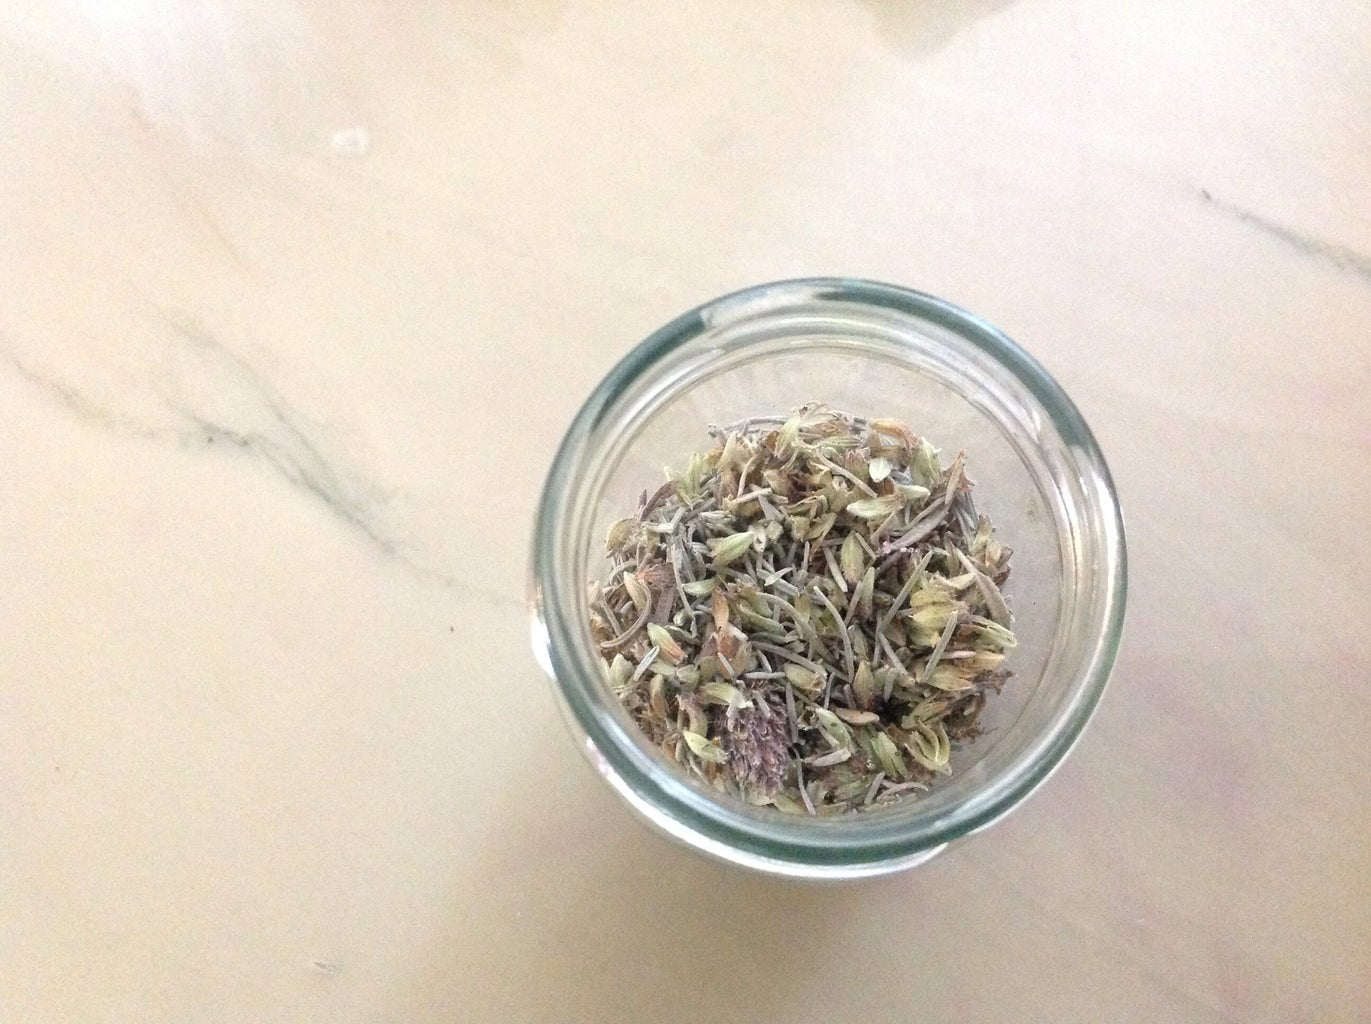 Drying the Lavender